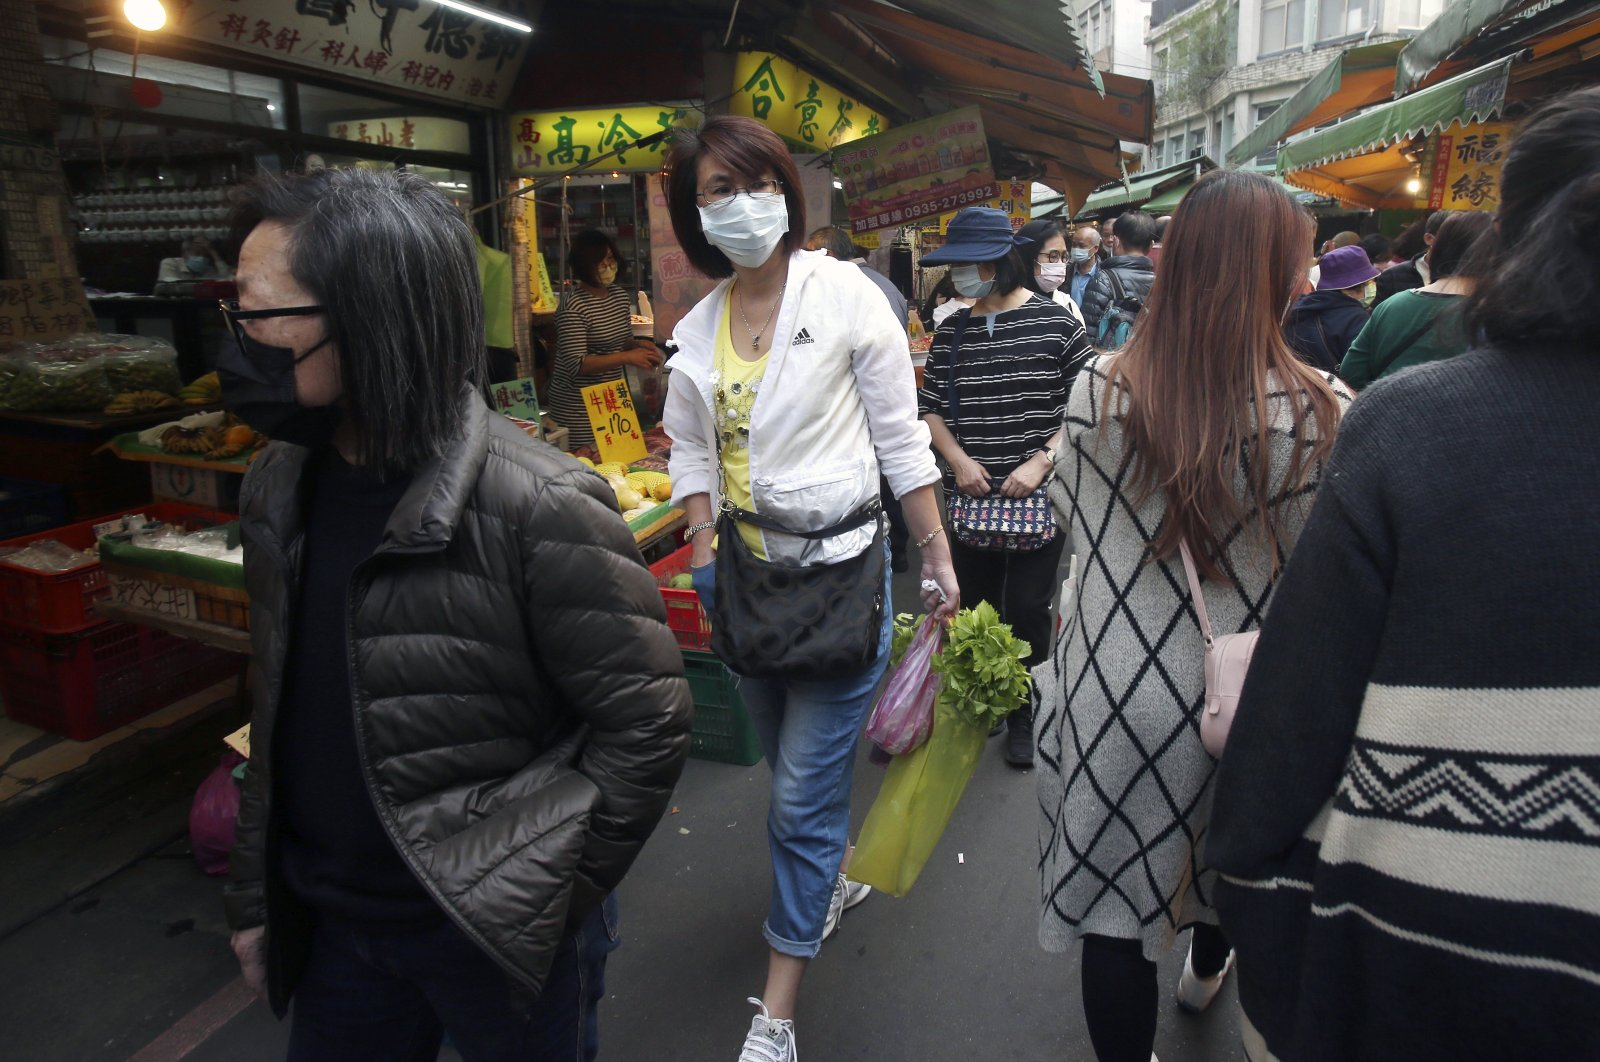 People wear face masks to help curb the spread of the coronavirus as they shop at a market in Taipei, Taiwan, Tuesday, April 14, 2020. (AP Photo)